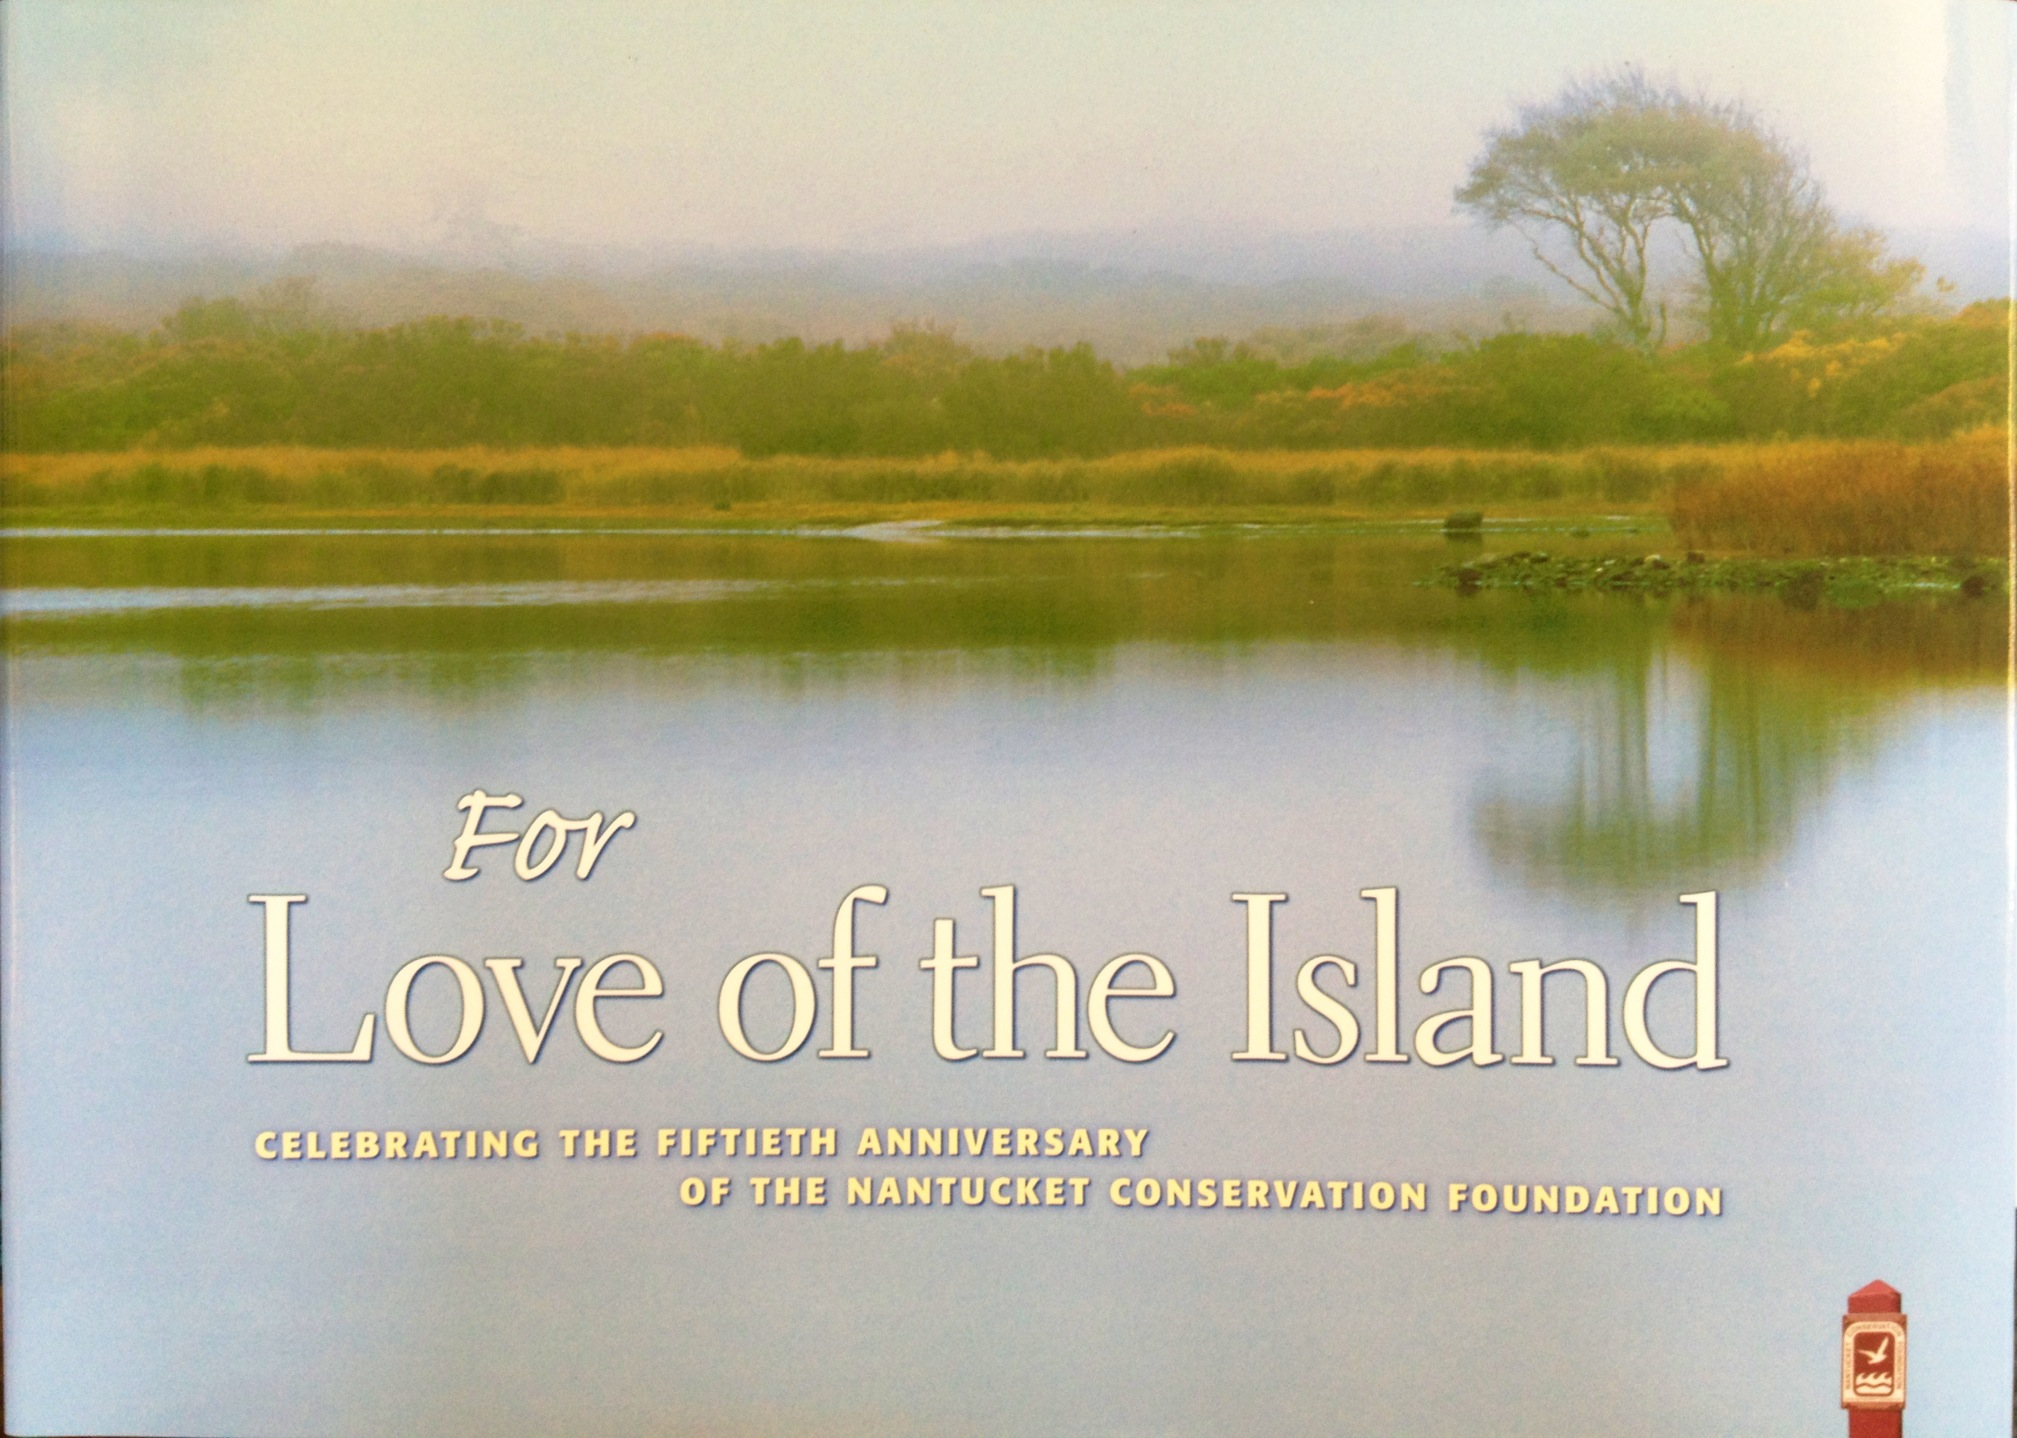 For Love of the Island